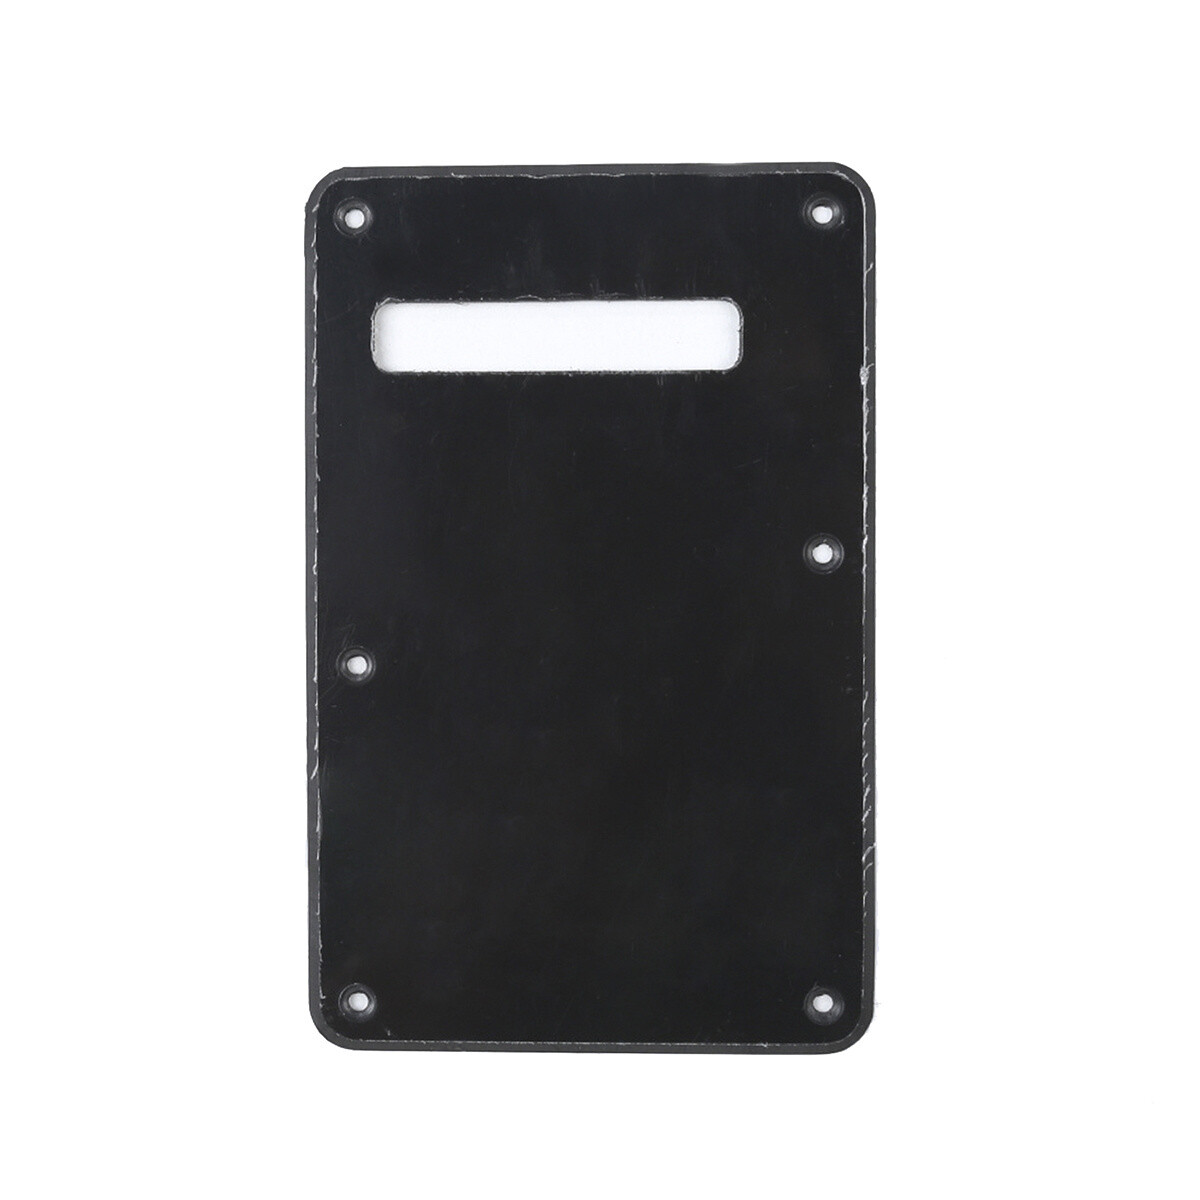 Brio Black Modern Style Back Plate Tremolo Cover 1 ply - US/Mexican Fender®Strat® Fit